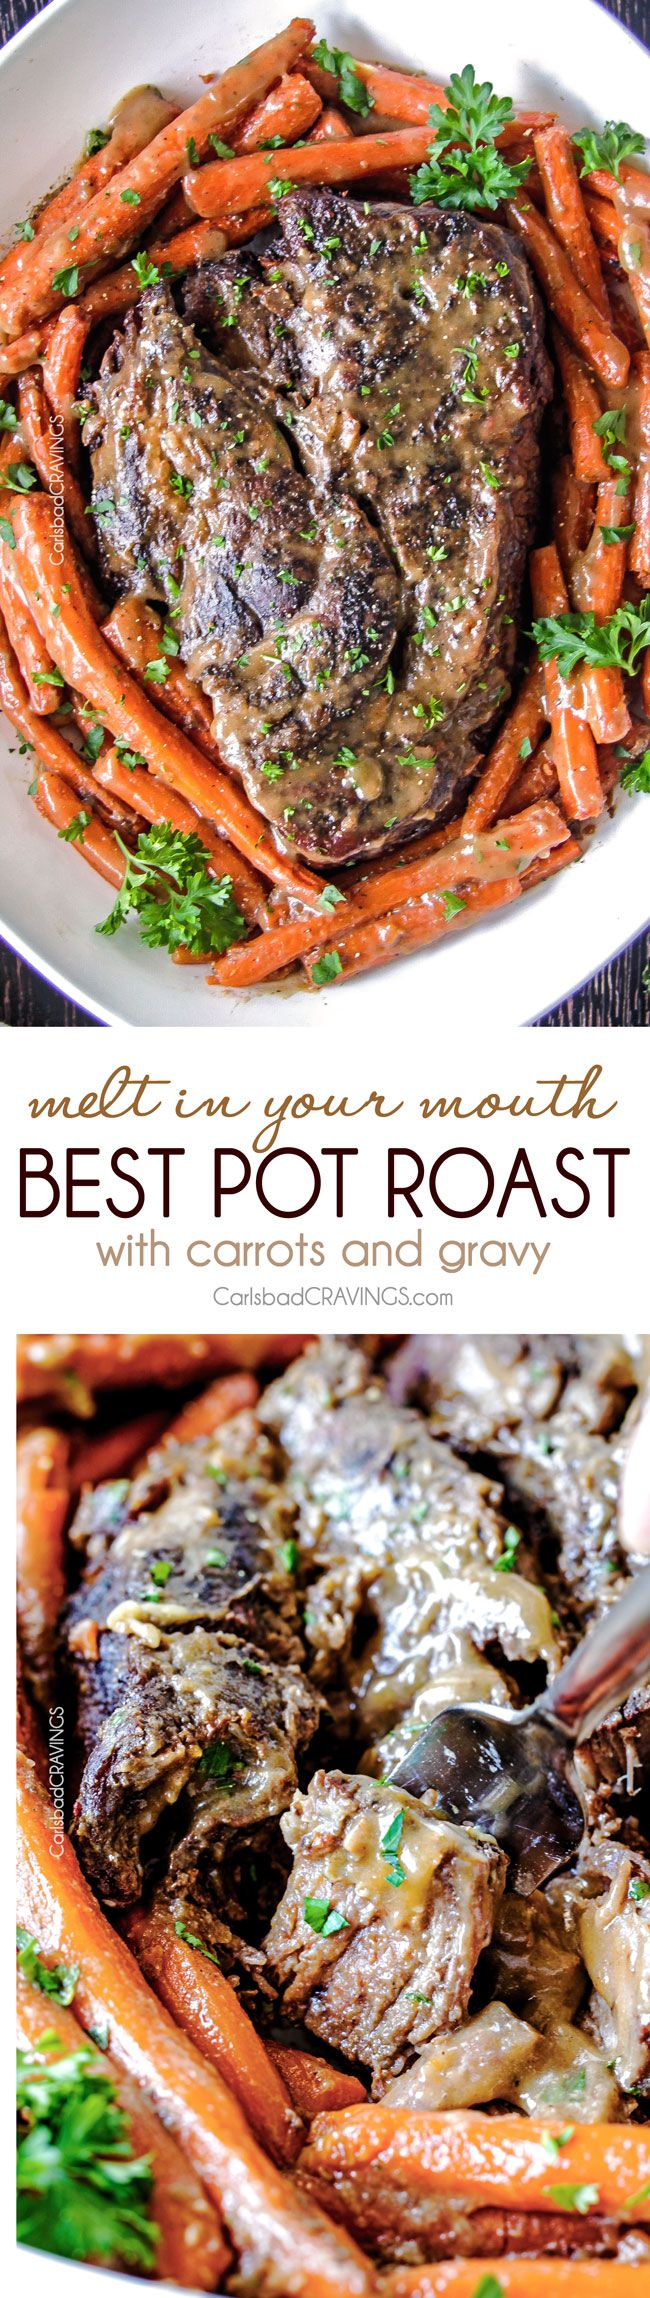 the BEST Melt in Your Mouth Pot Roast and carrots with mouthwatering gravy is the best pot roast I have ever had! Juicy, fall